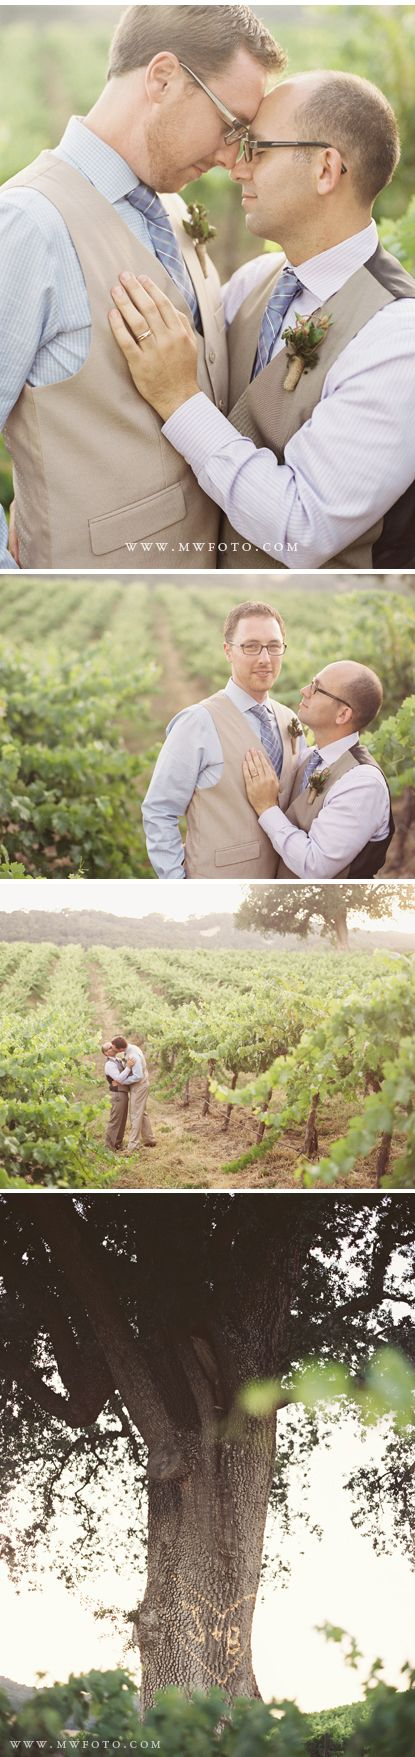 Paso Robles Hammersky Gay Wedding - Photos by Michelle Warren Photography - http://www.mwfoto.com